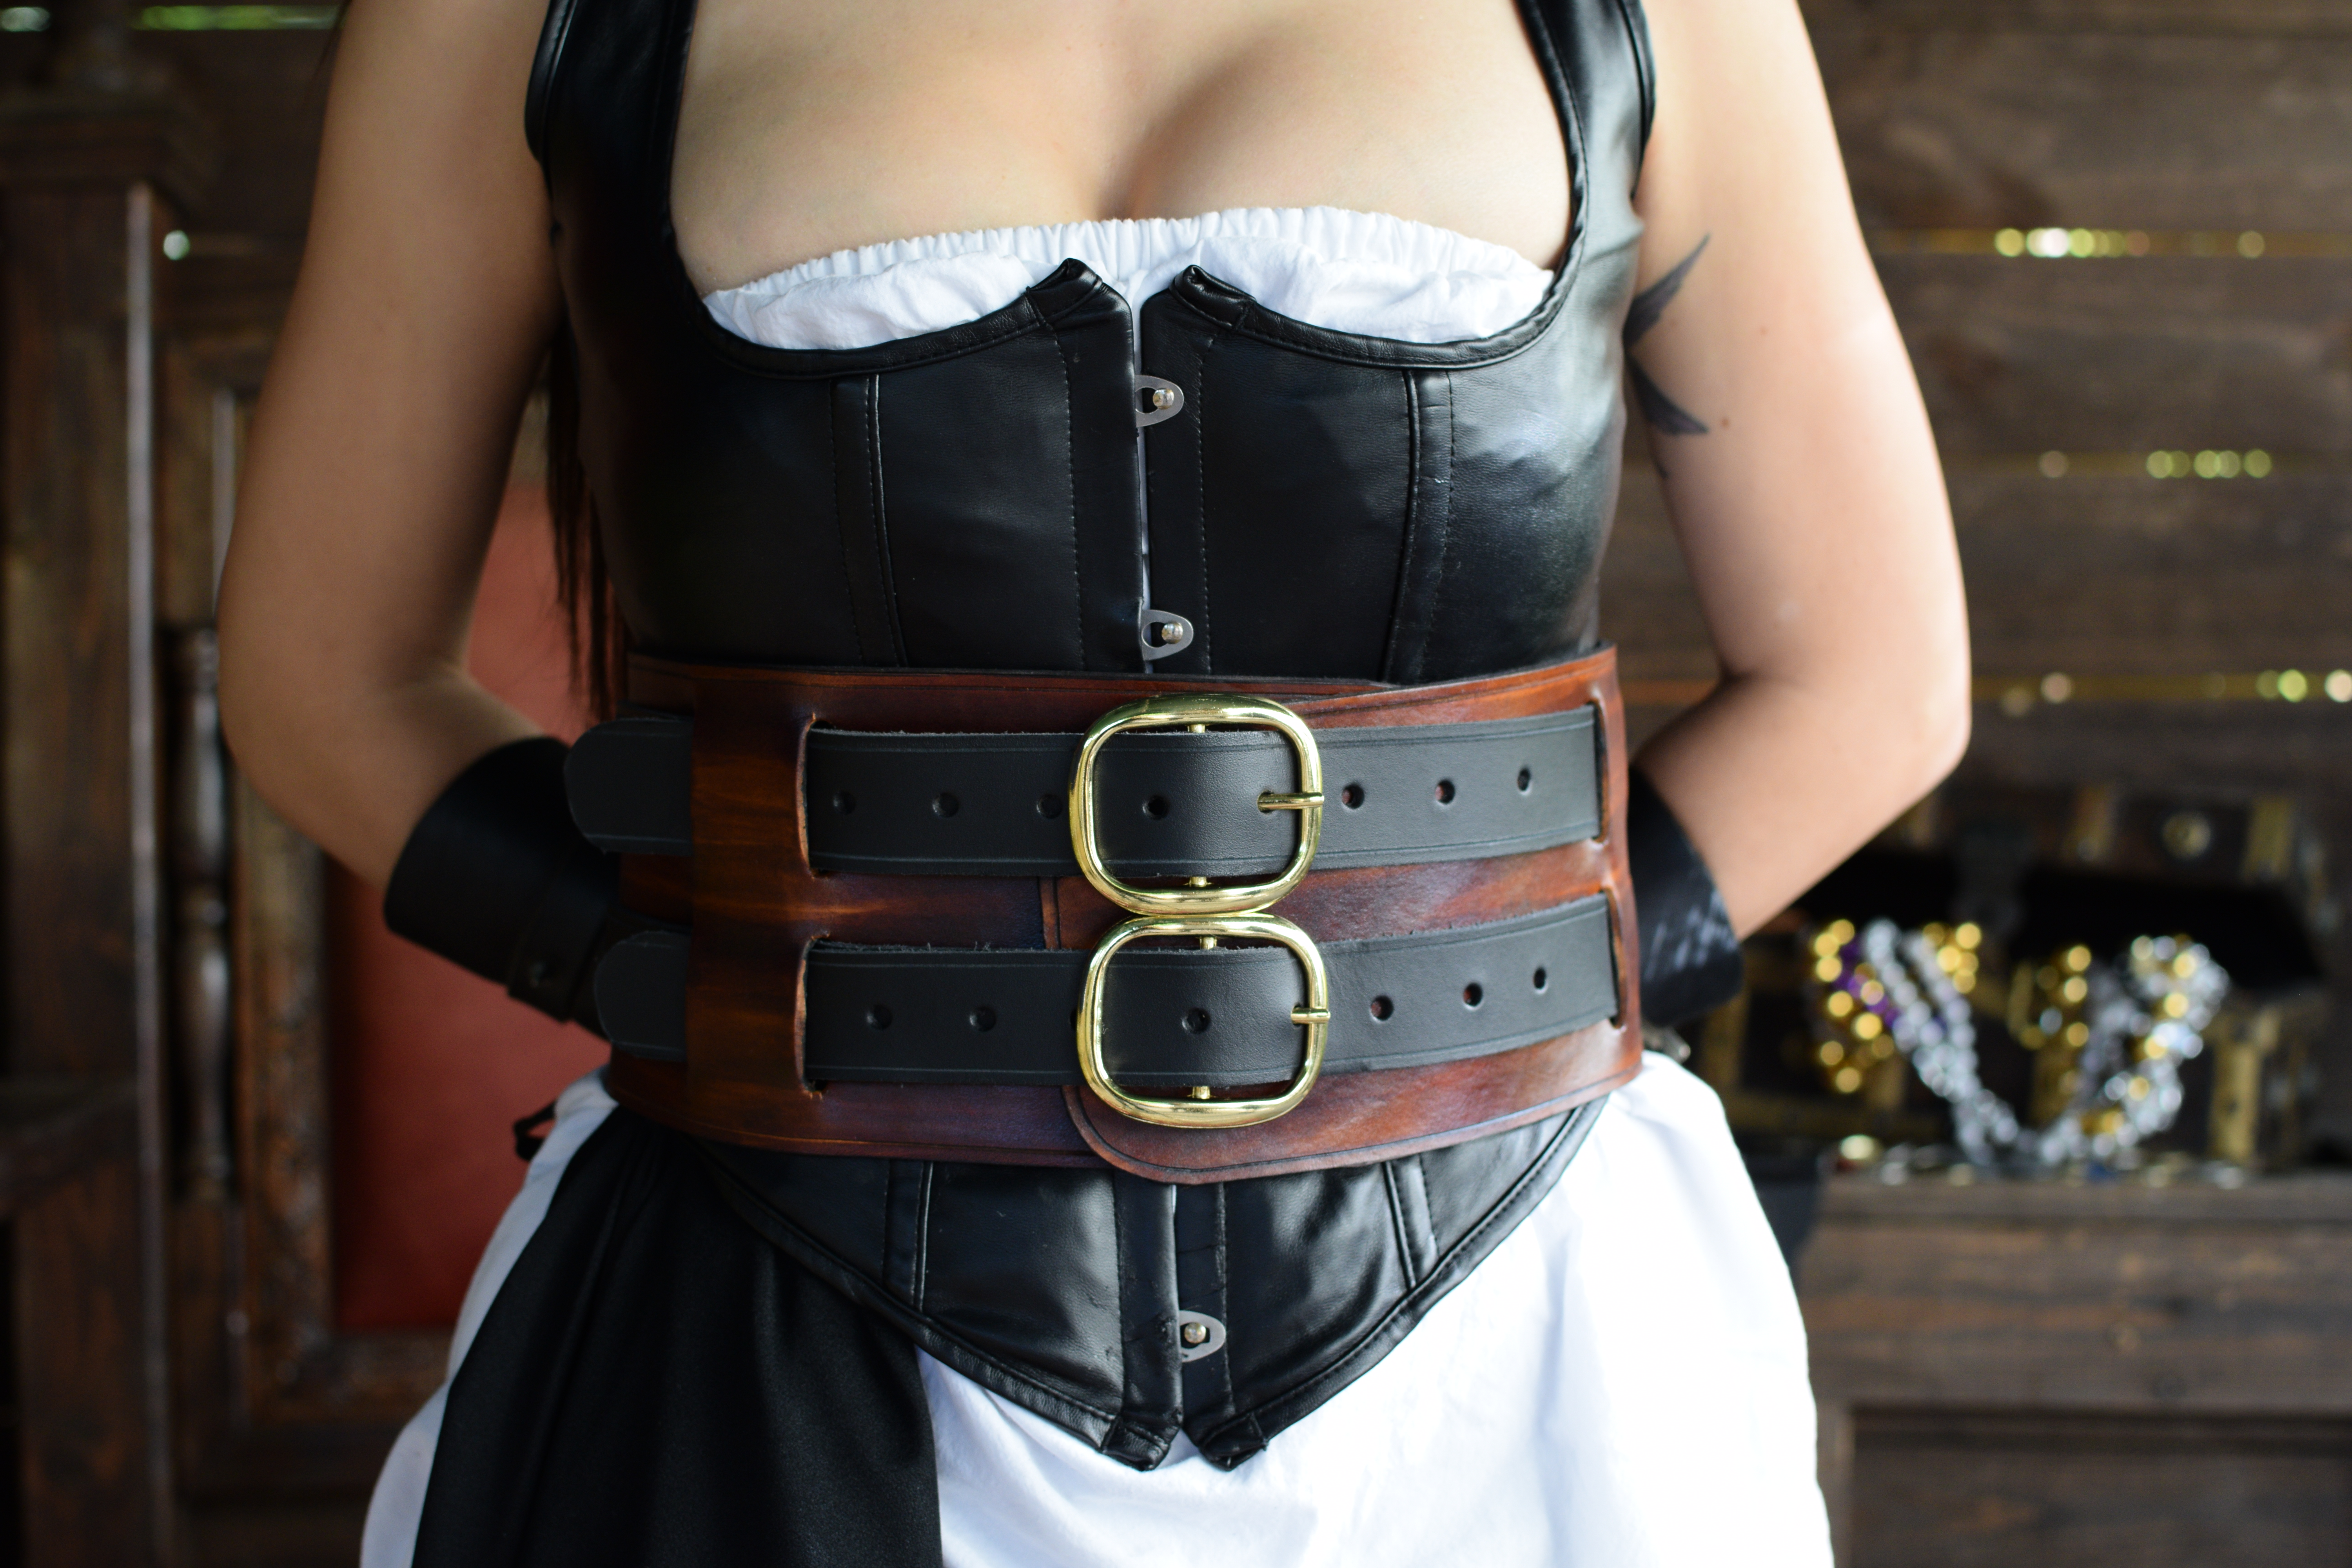 The Wench Leather Pirate Warrior Corset Belt Dredmor